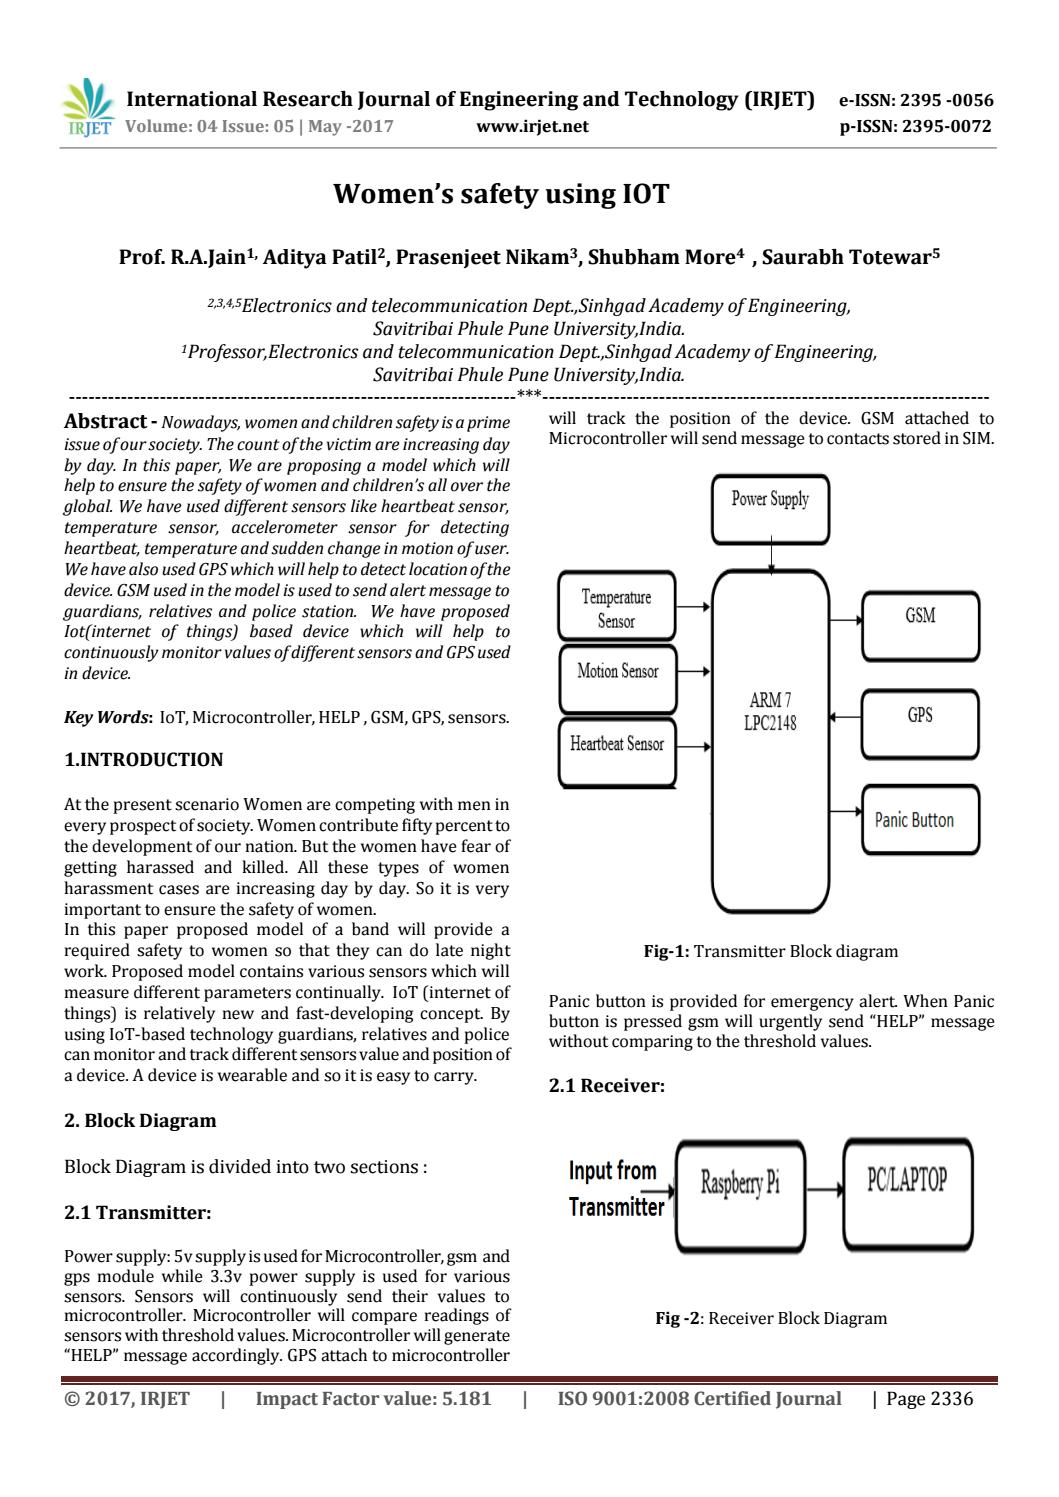 Womens Safety Using Iot By Irjet Journal Issuu Fig A Block Diagram Of Smart Transmitter